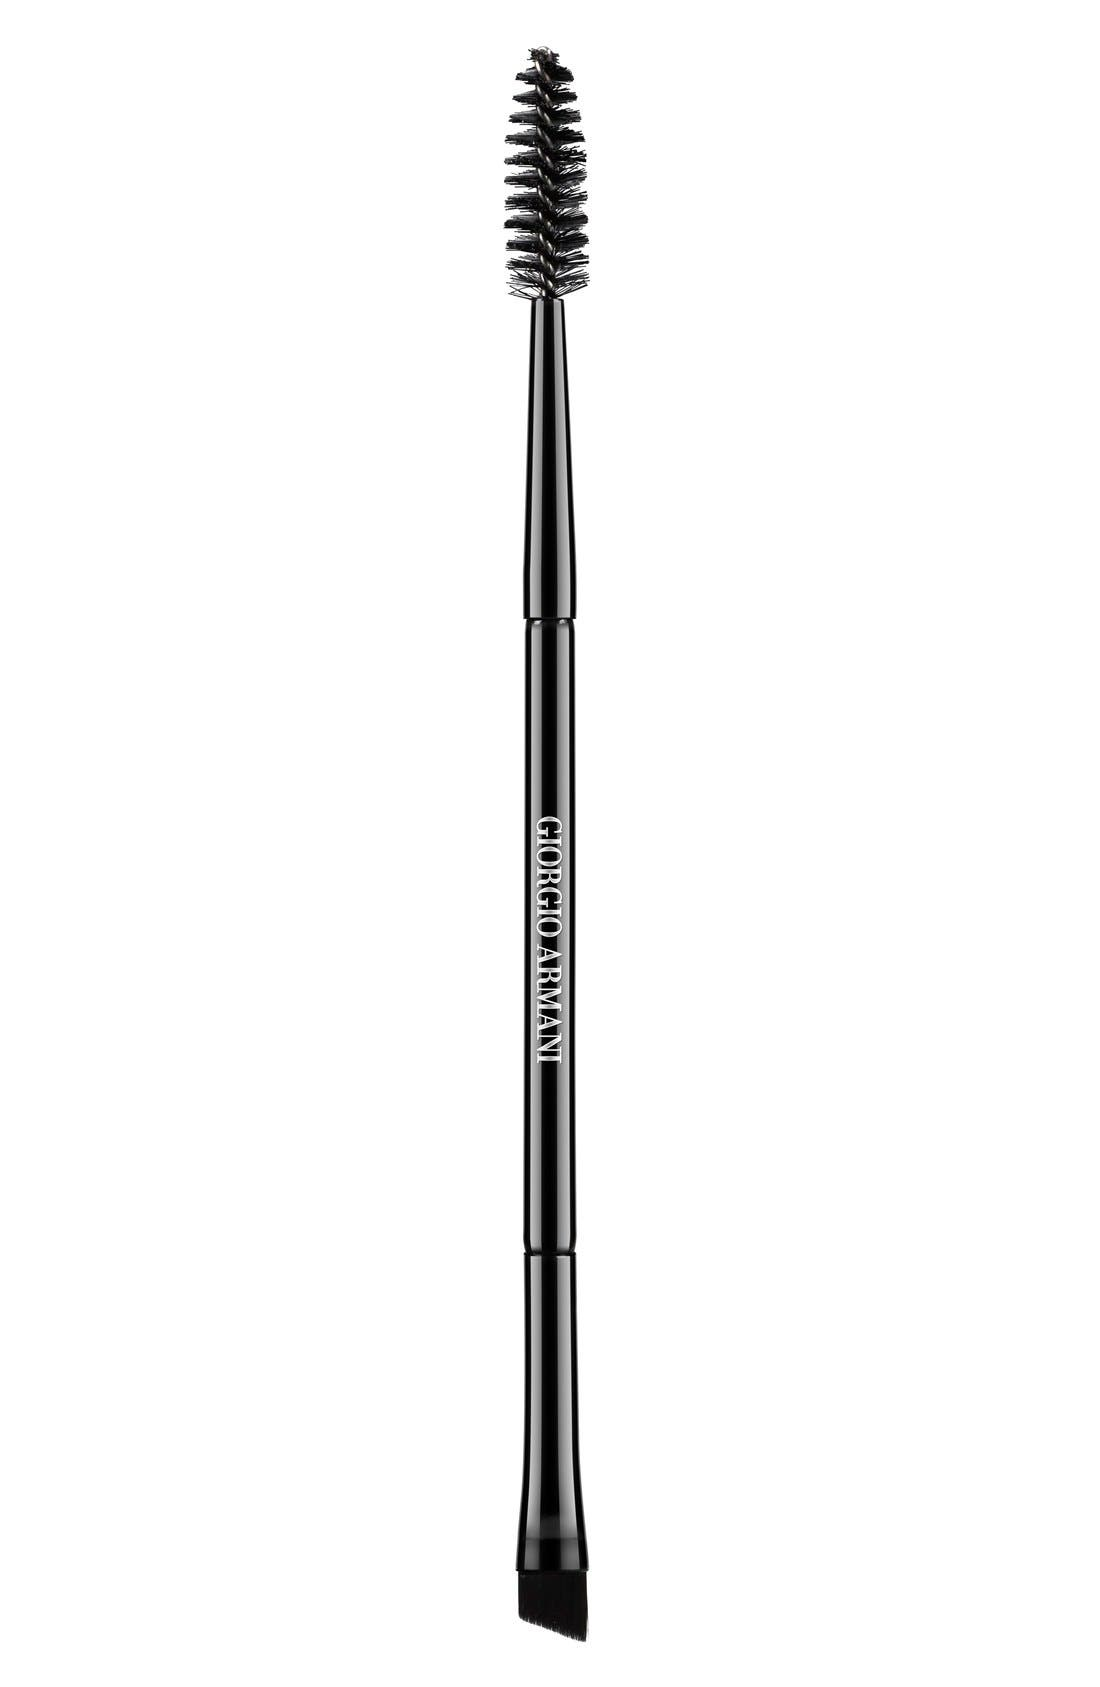 'Made to Measure' Dual-Sided Eye & Brow Brush,                             Main thumbnail 1, color,                             NO COLOR